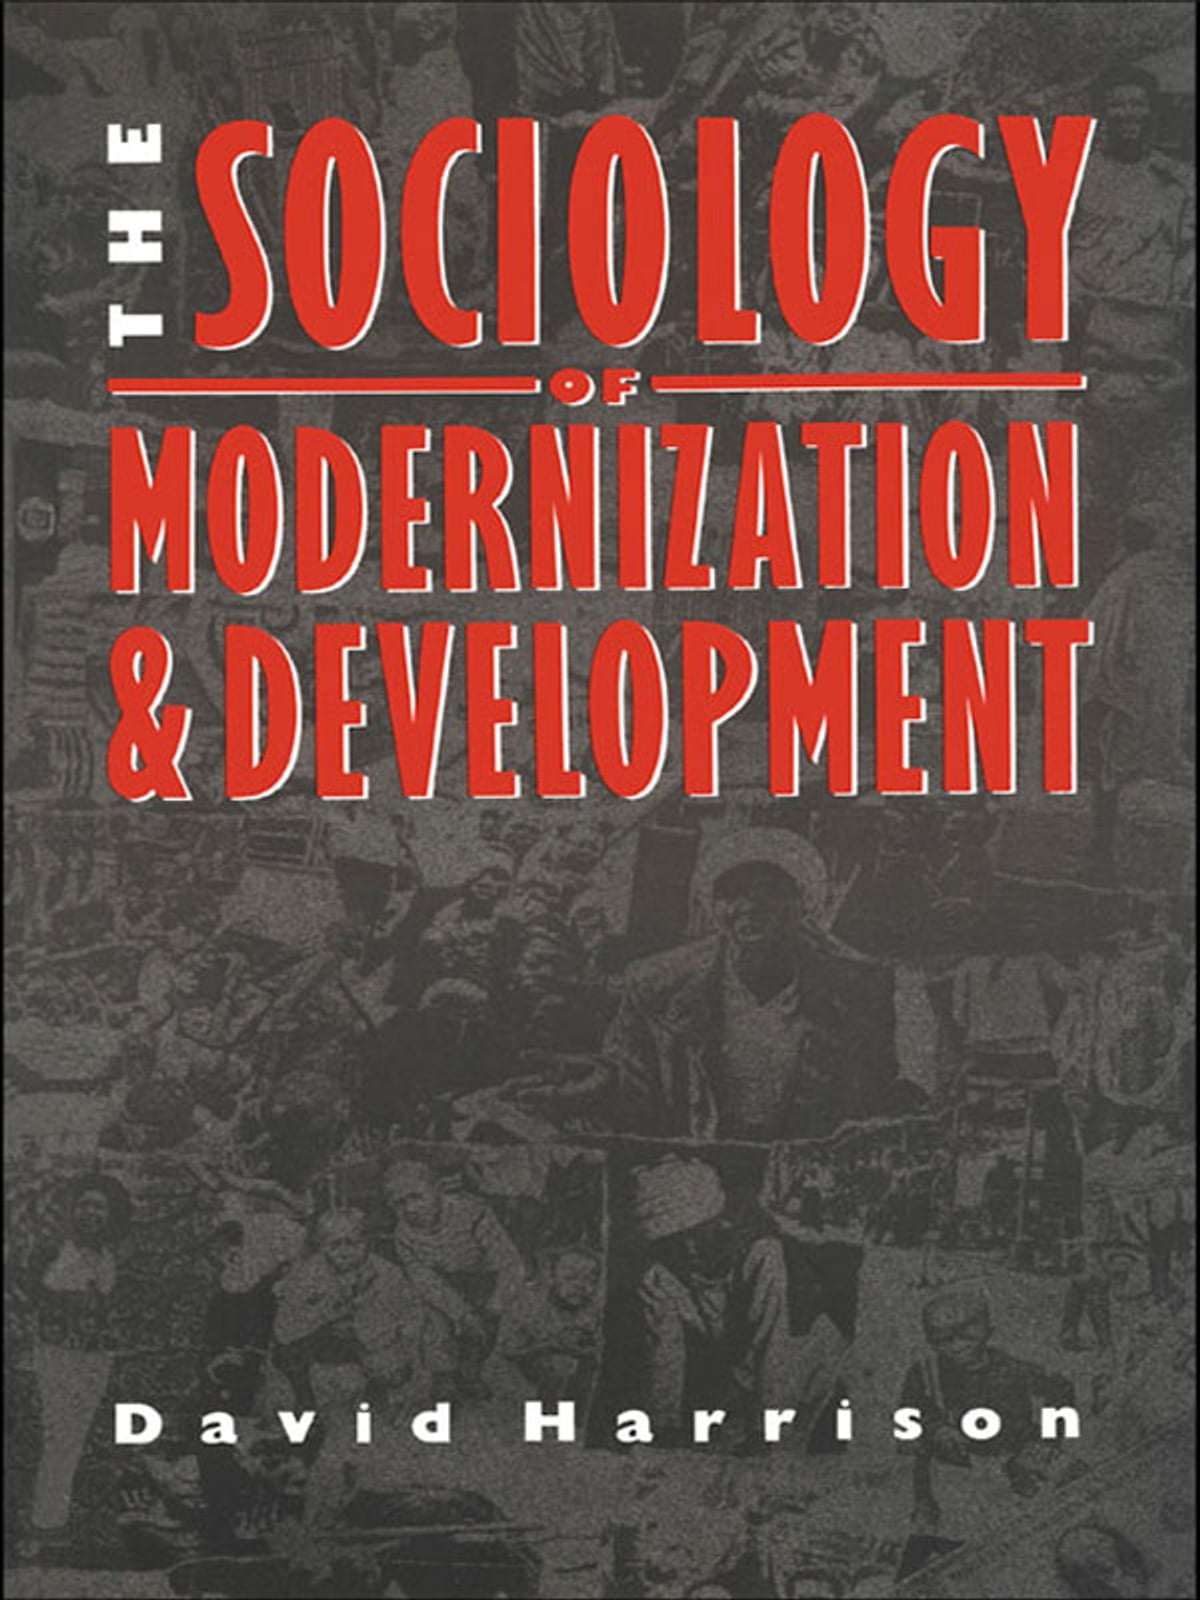 what is modernization in sociology